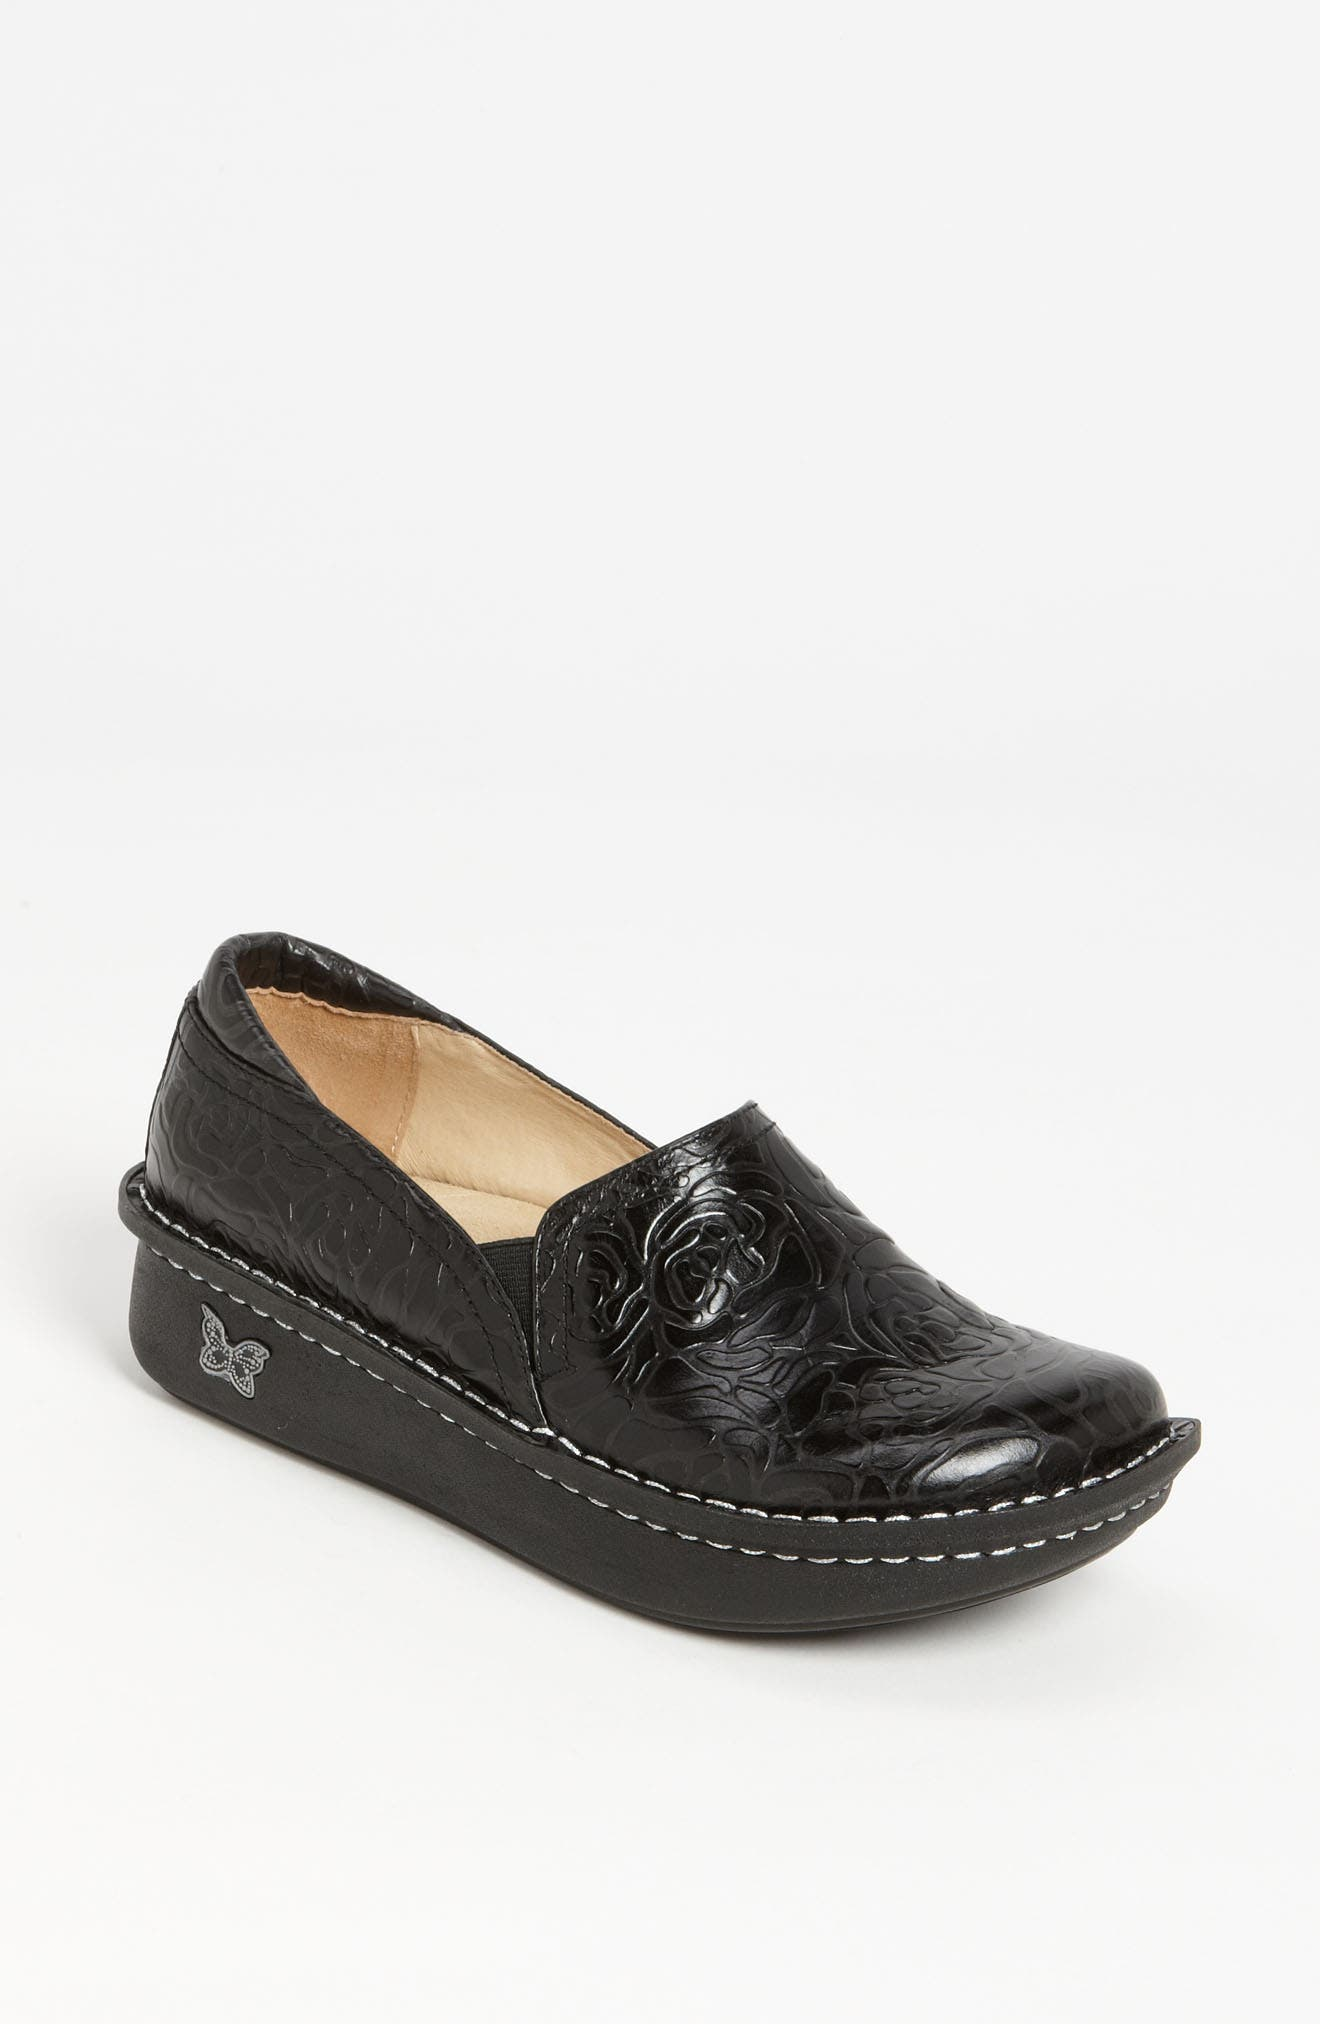 ALEGRIA, 'Debra' Slip-On, Main thumbnail 1, color, BLACK EMBOSSED ROSE LEATHER